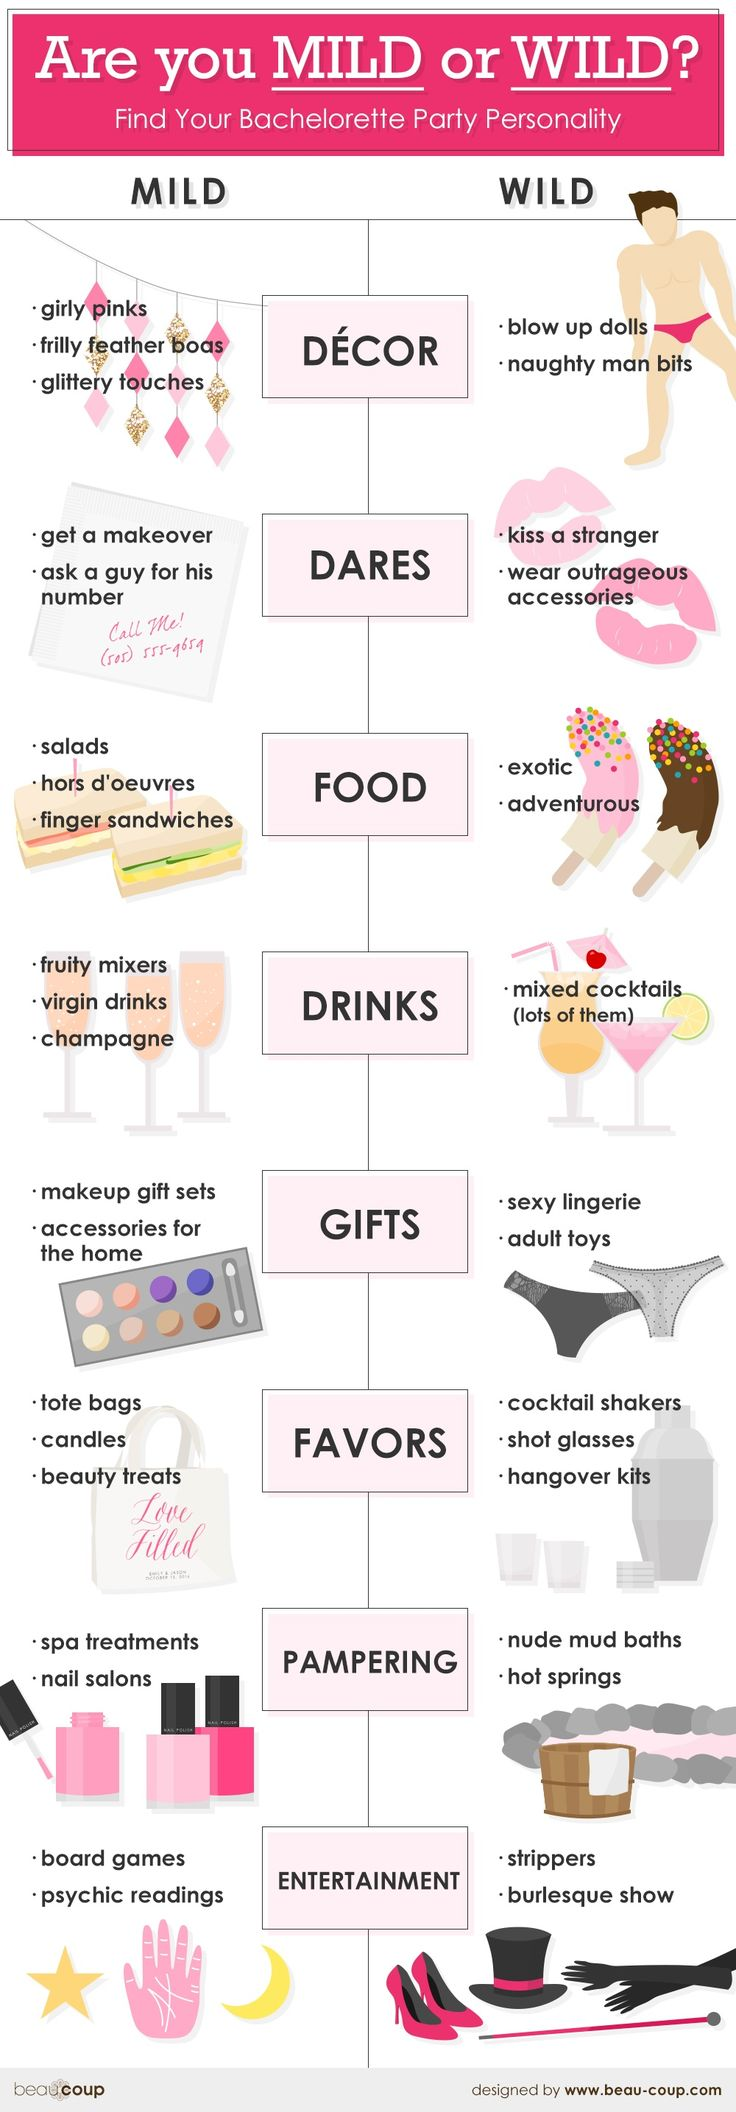 Mild or Wild? Bachelorette Party Ideas To Perfectly Suit Your Personality -Beau-coup Blog